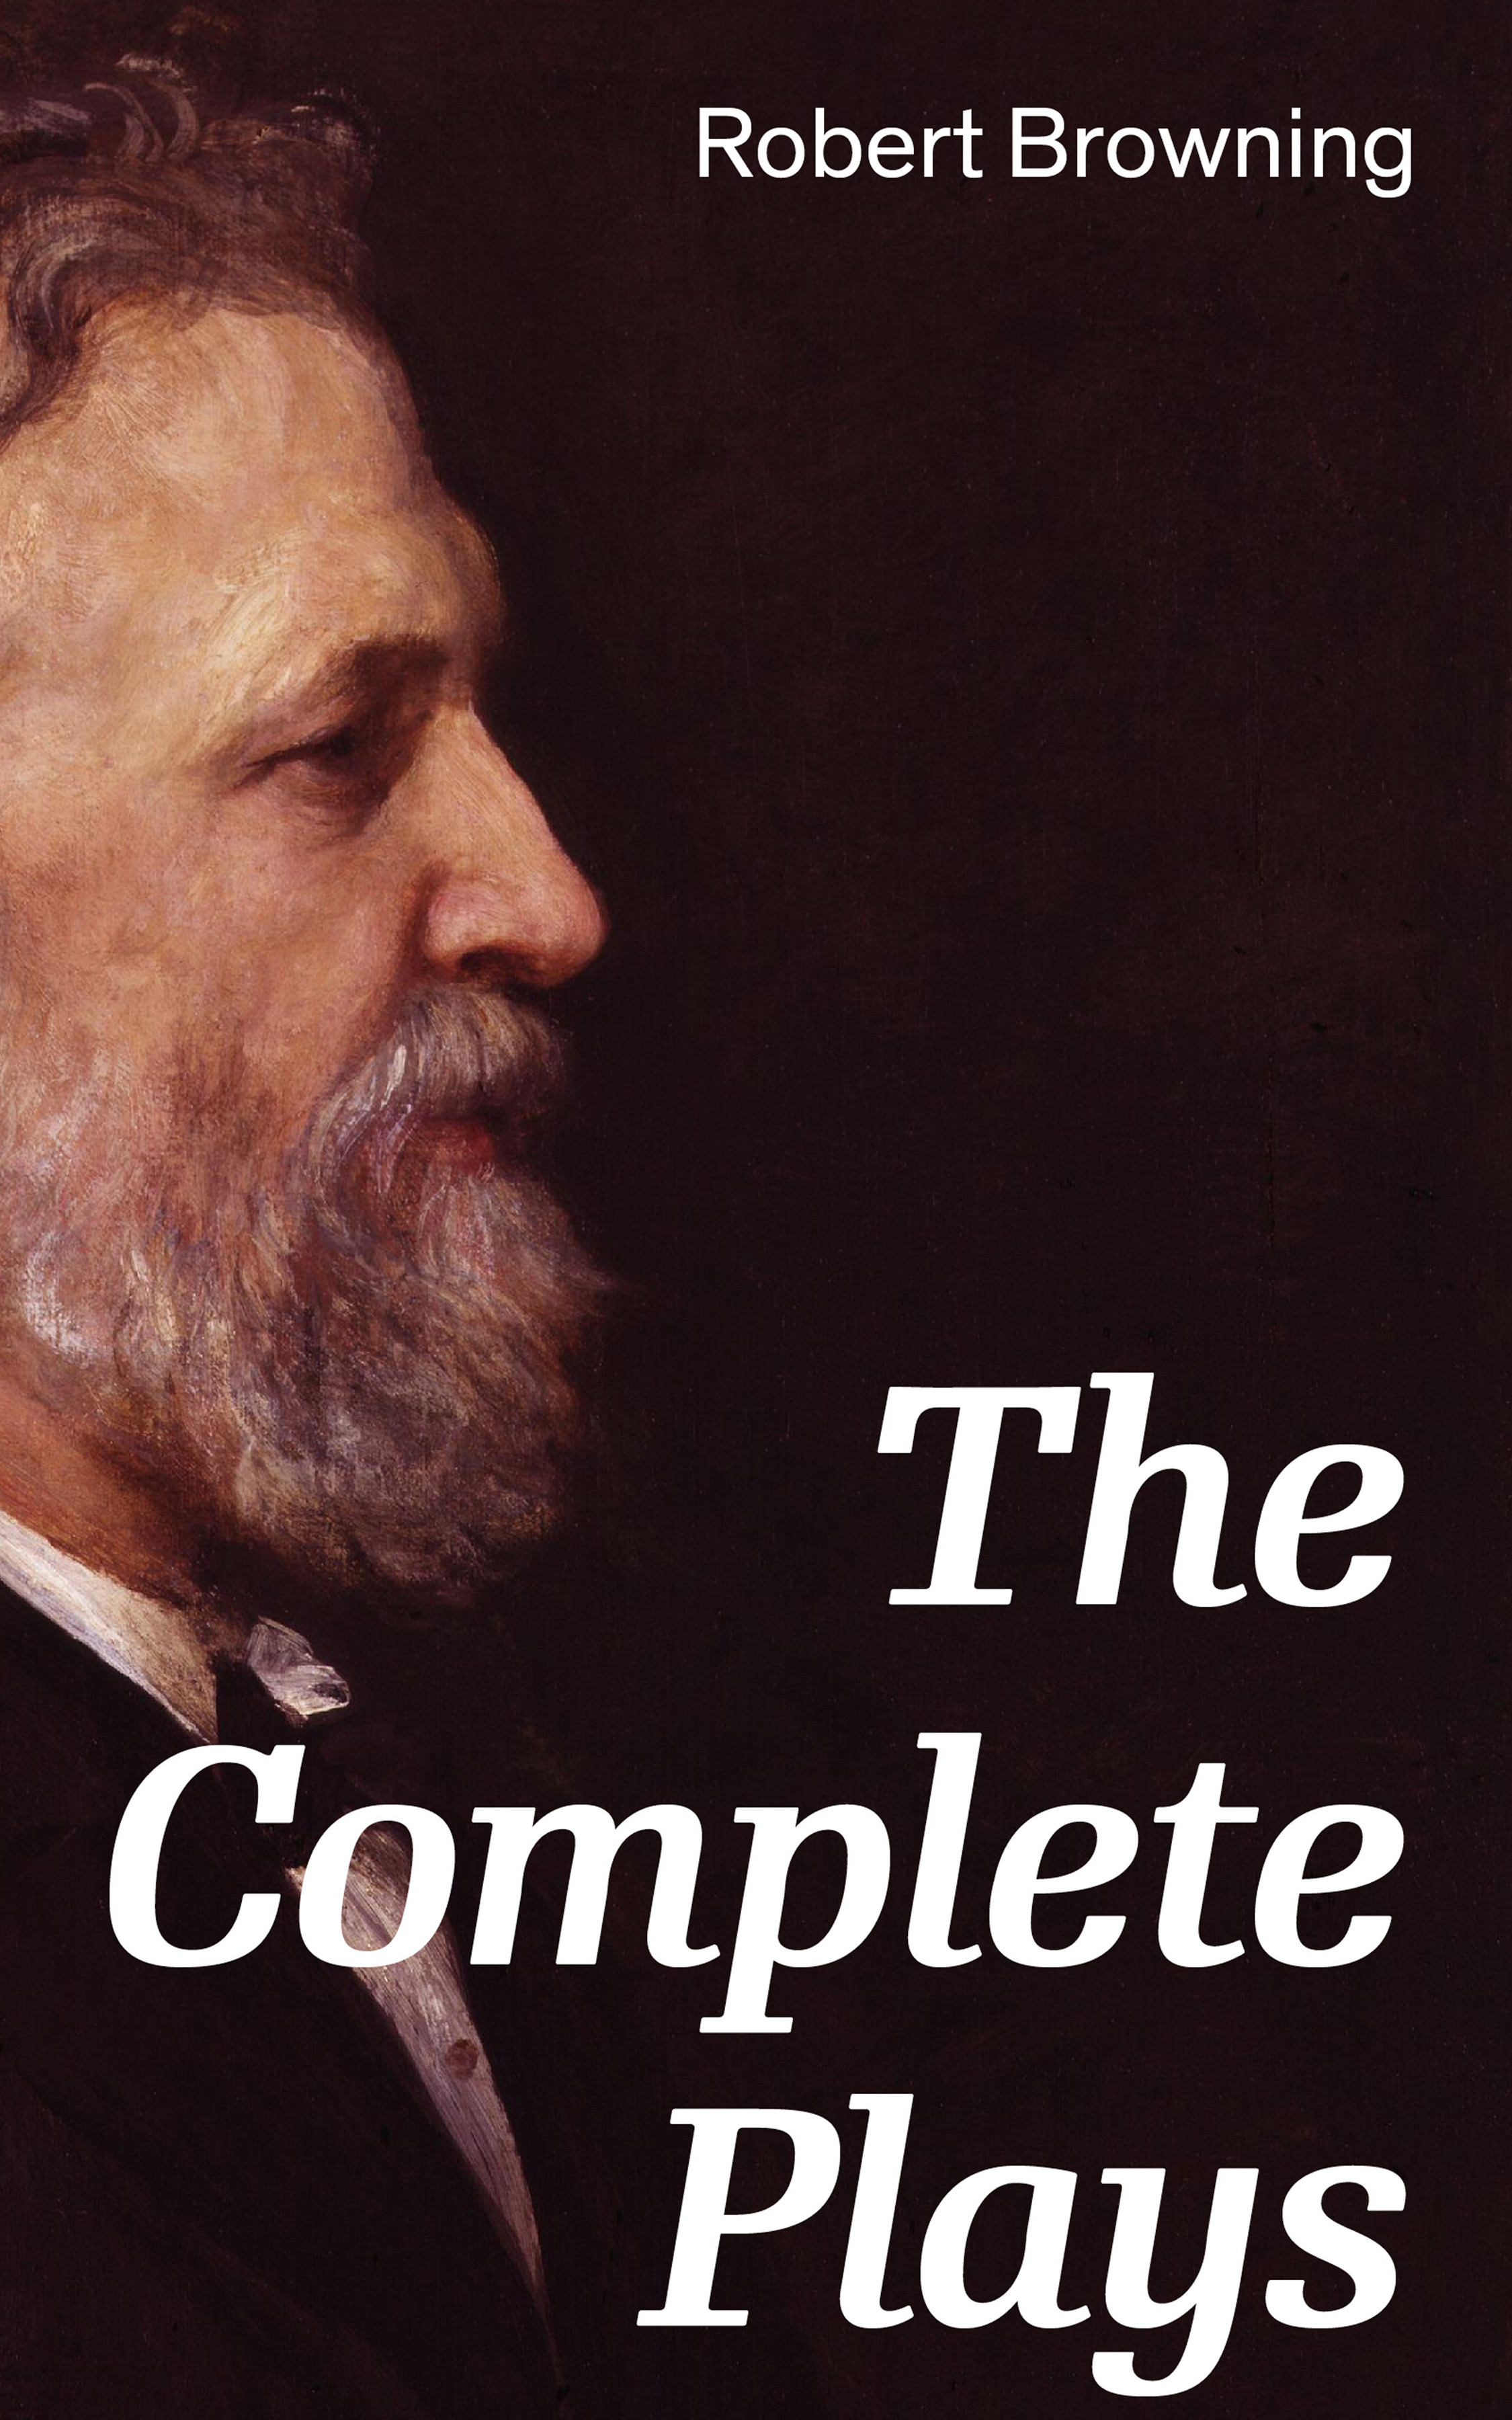 Robert Browning The Complete Plays: Paracelsus, Stafford, Herakles, The Agamemnon of Aeschylus, Bells and Pomegranates, Pippa Passes, King Victor and King Charles, The Return of the Druses, Luria and a Soul's Tragedy love christopher charles scriptural latin plays of the renaissance and milton s cambridge manuscript